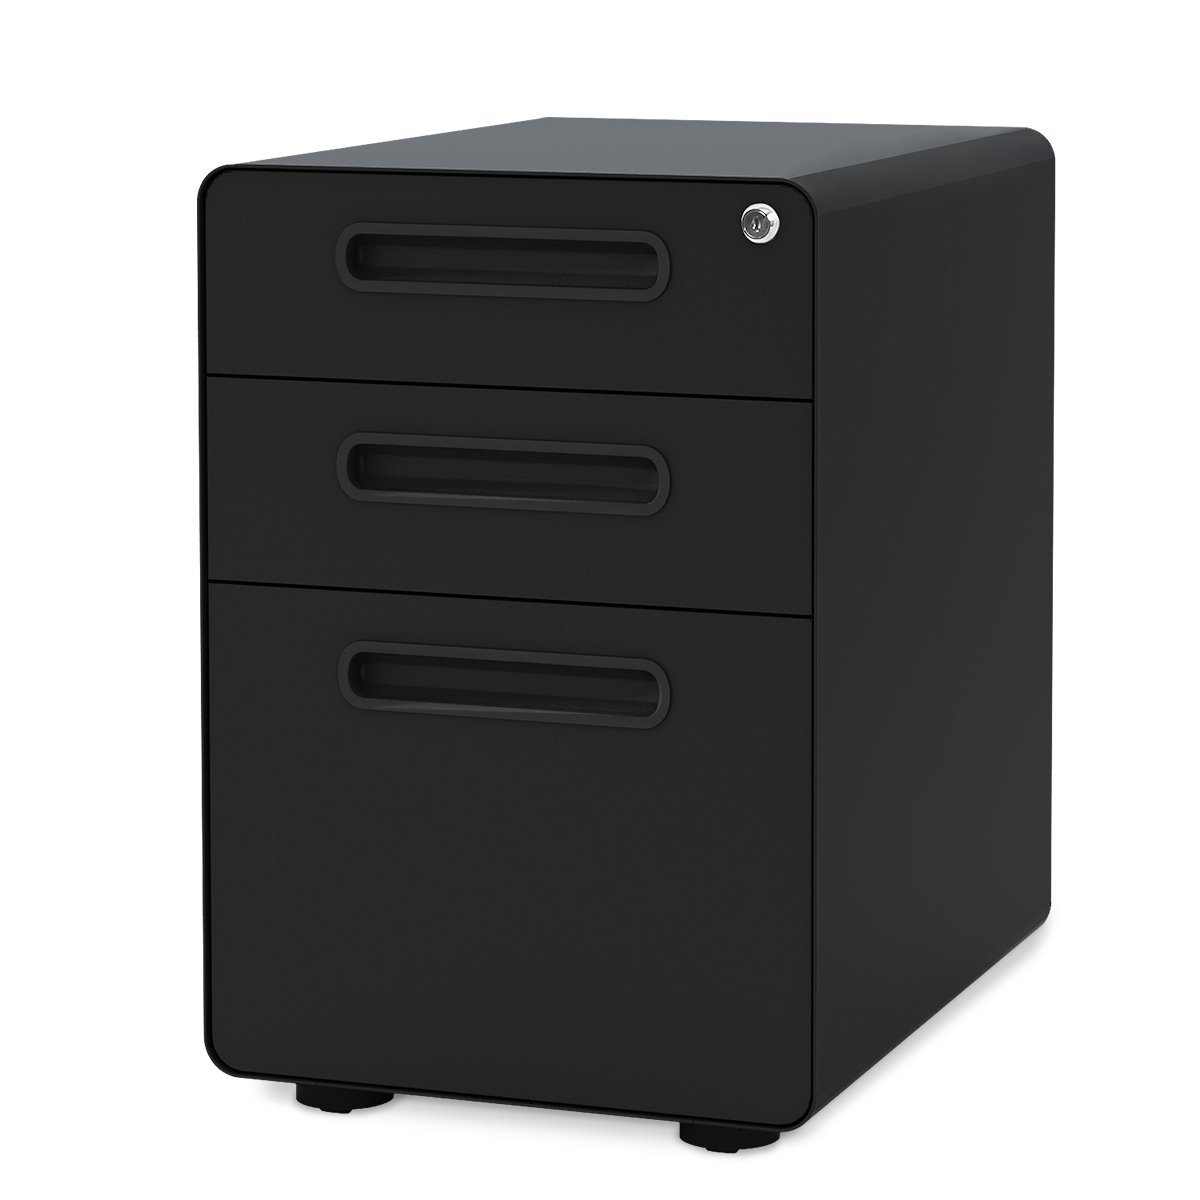 DEVAISE 3-Drawer Mobile File Cabinet with Anti-tilt Mechanism,Legal/Letter Size (Black)